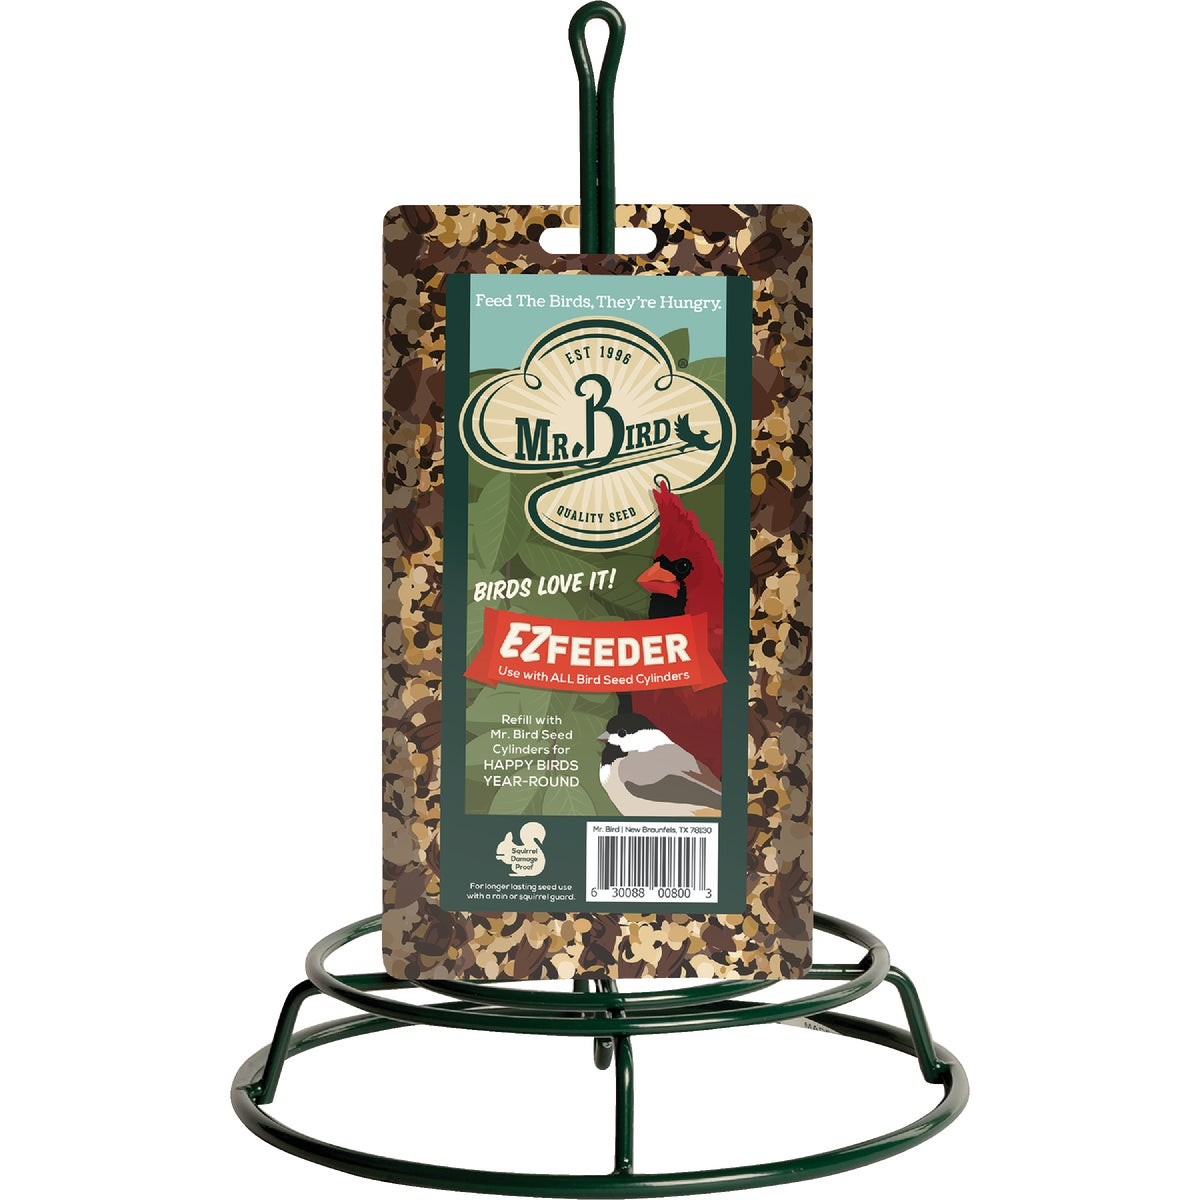 SEED LOG HANGING FEEDER - 8007 by Pine Tree Farms Inc.